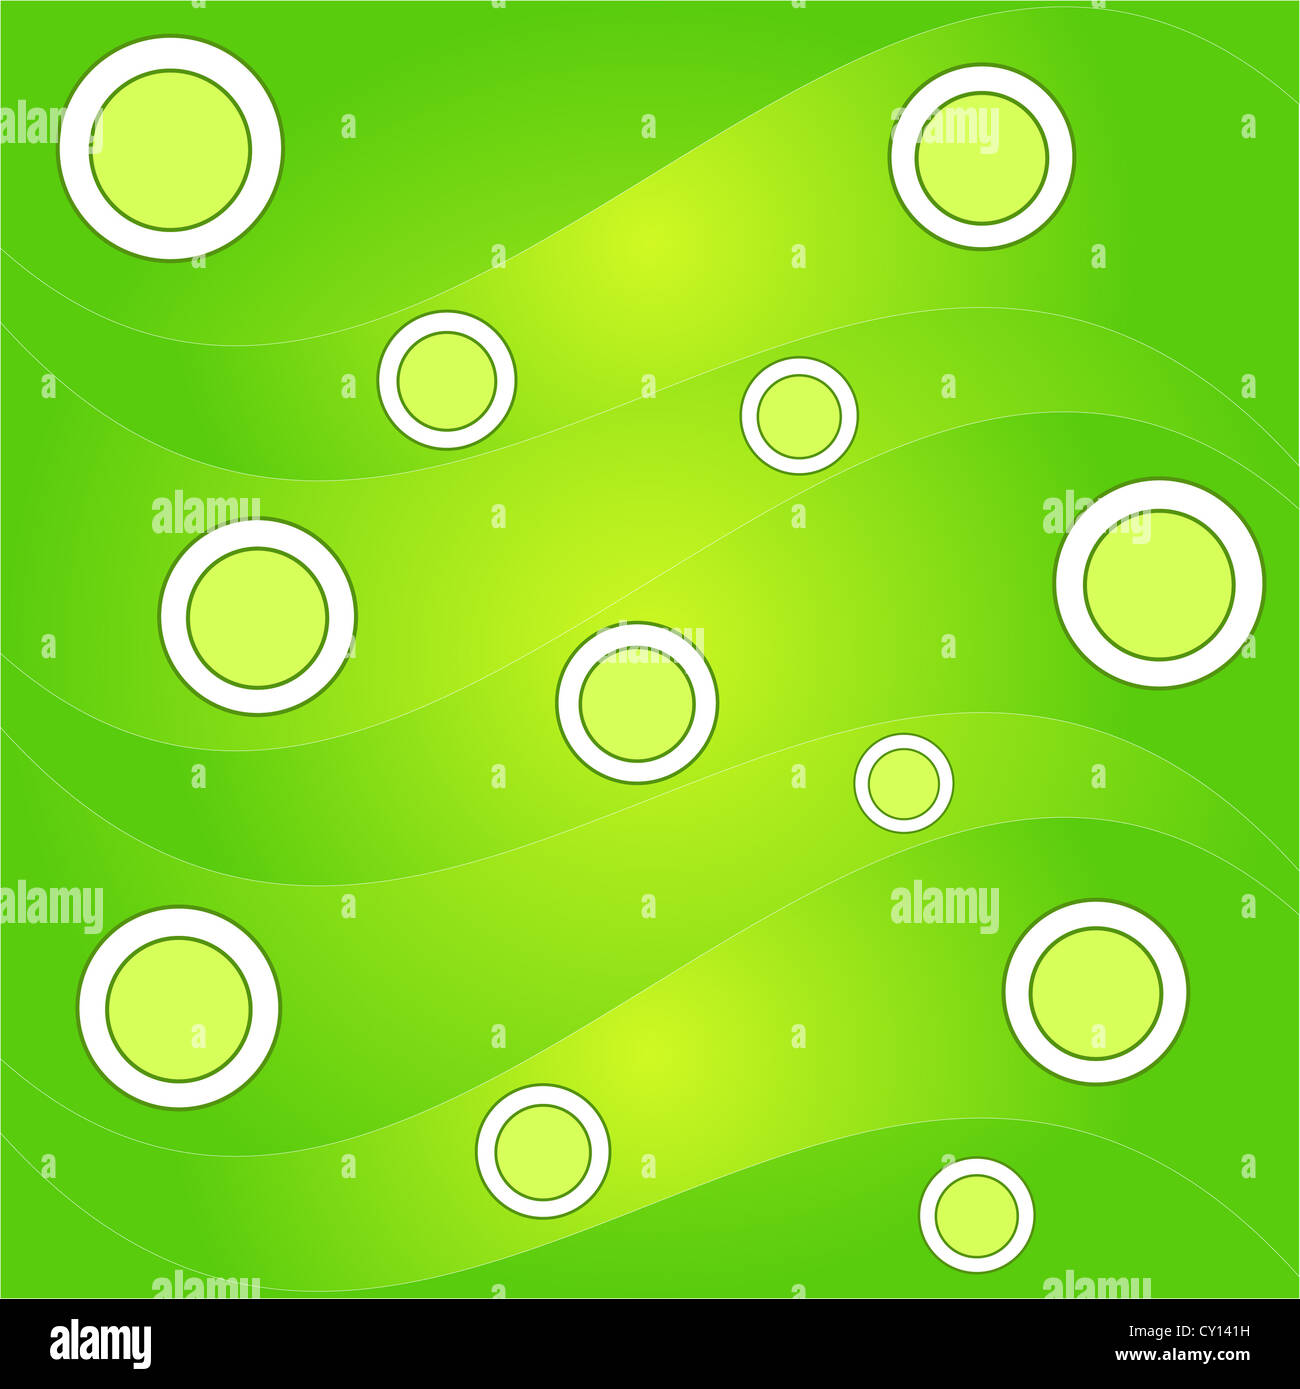 Green circles and waves pattern Stock Photo